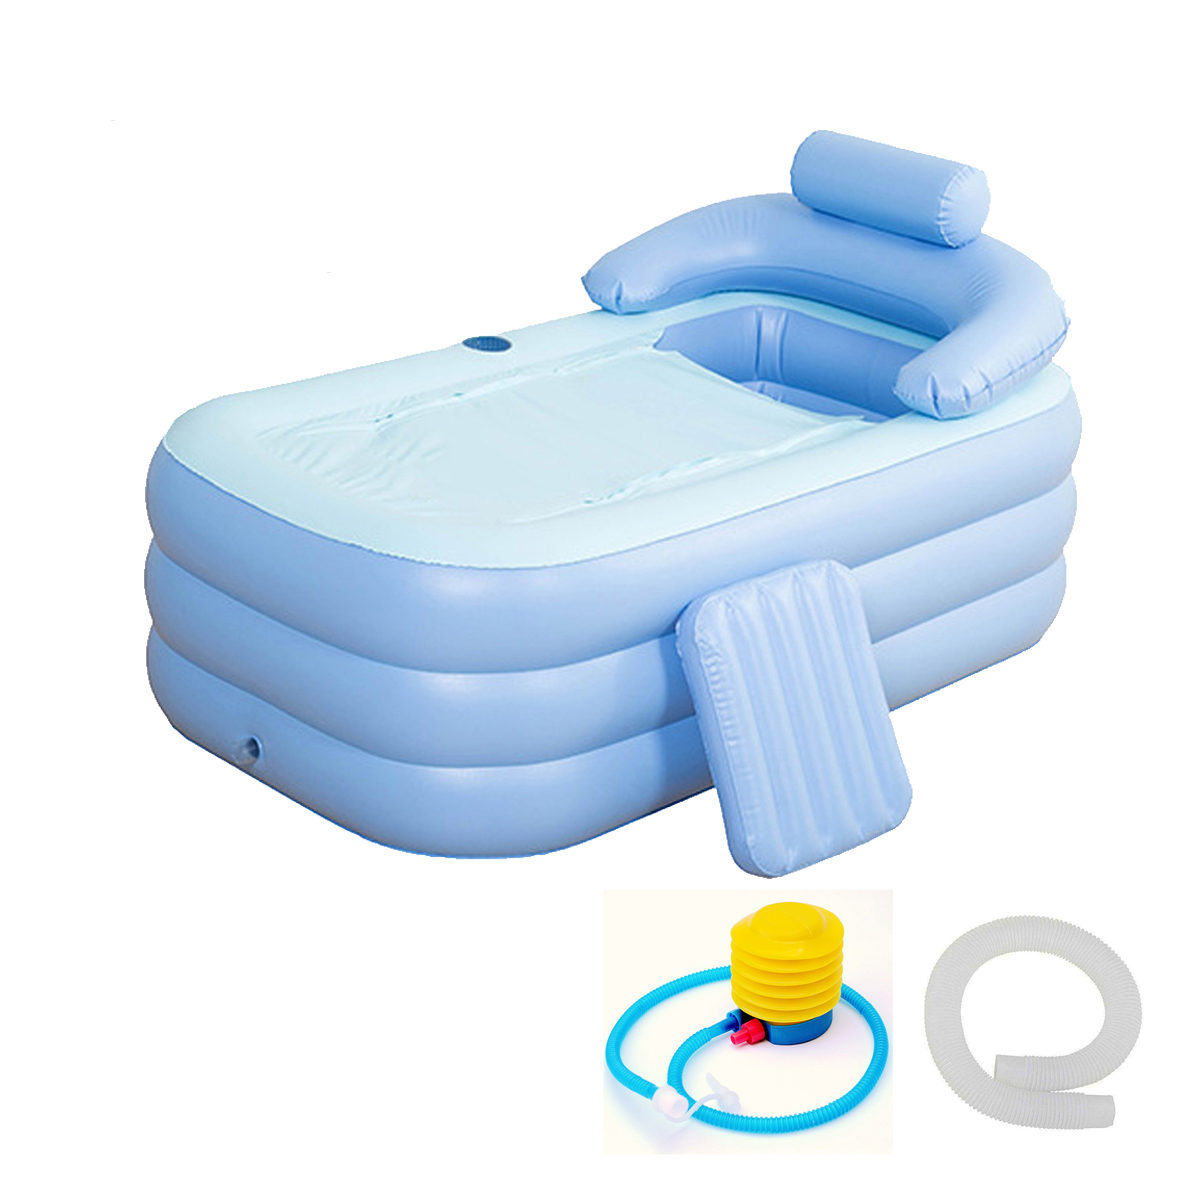 160 *84* 64cm Blue Large Size PVC Folding Portable Inflatable Bath Bathtub For Adults With Air Pump SPA Household Inflatable Tub